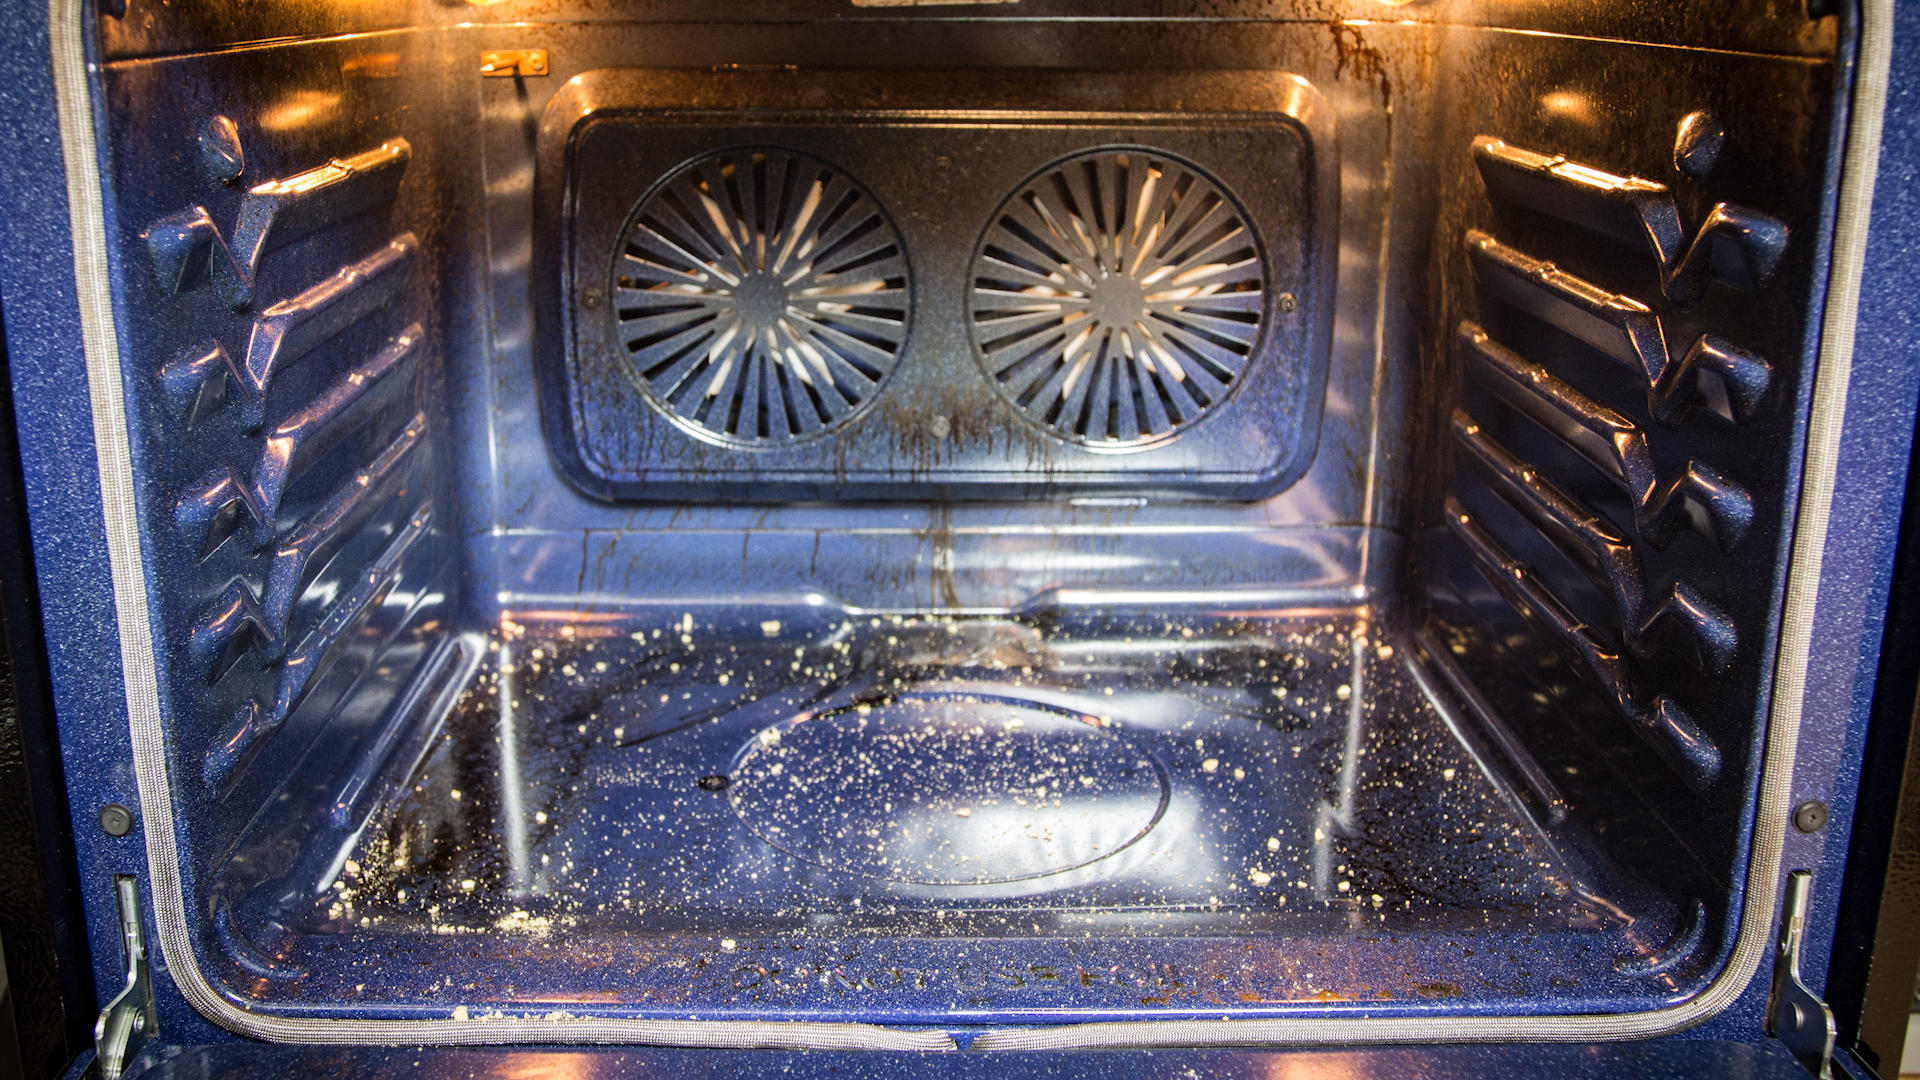 Video: How to clean your oven with baking soda and vinegar